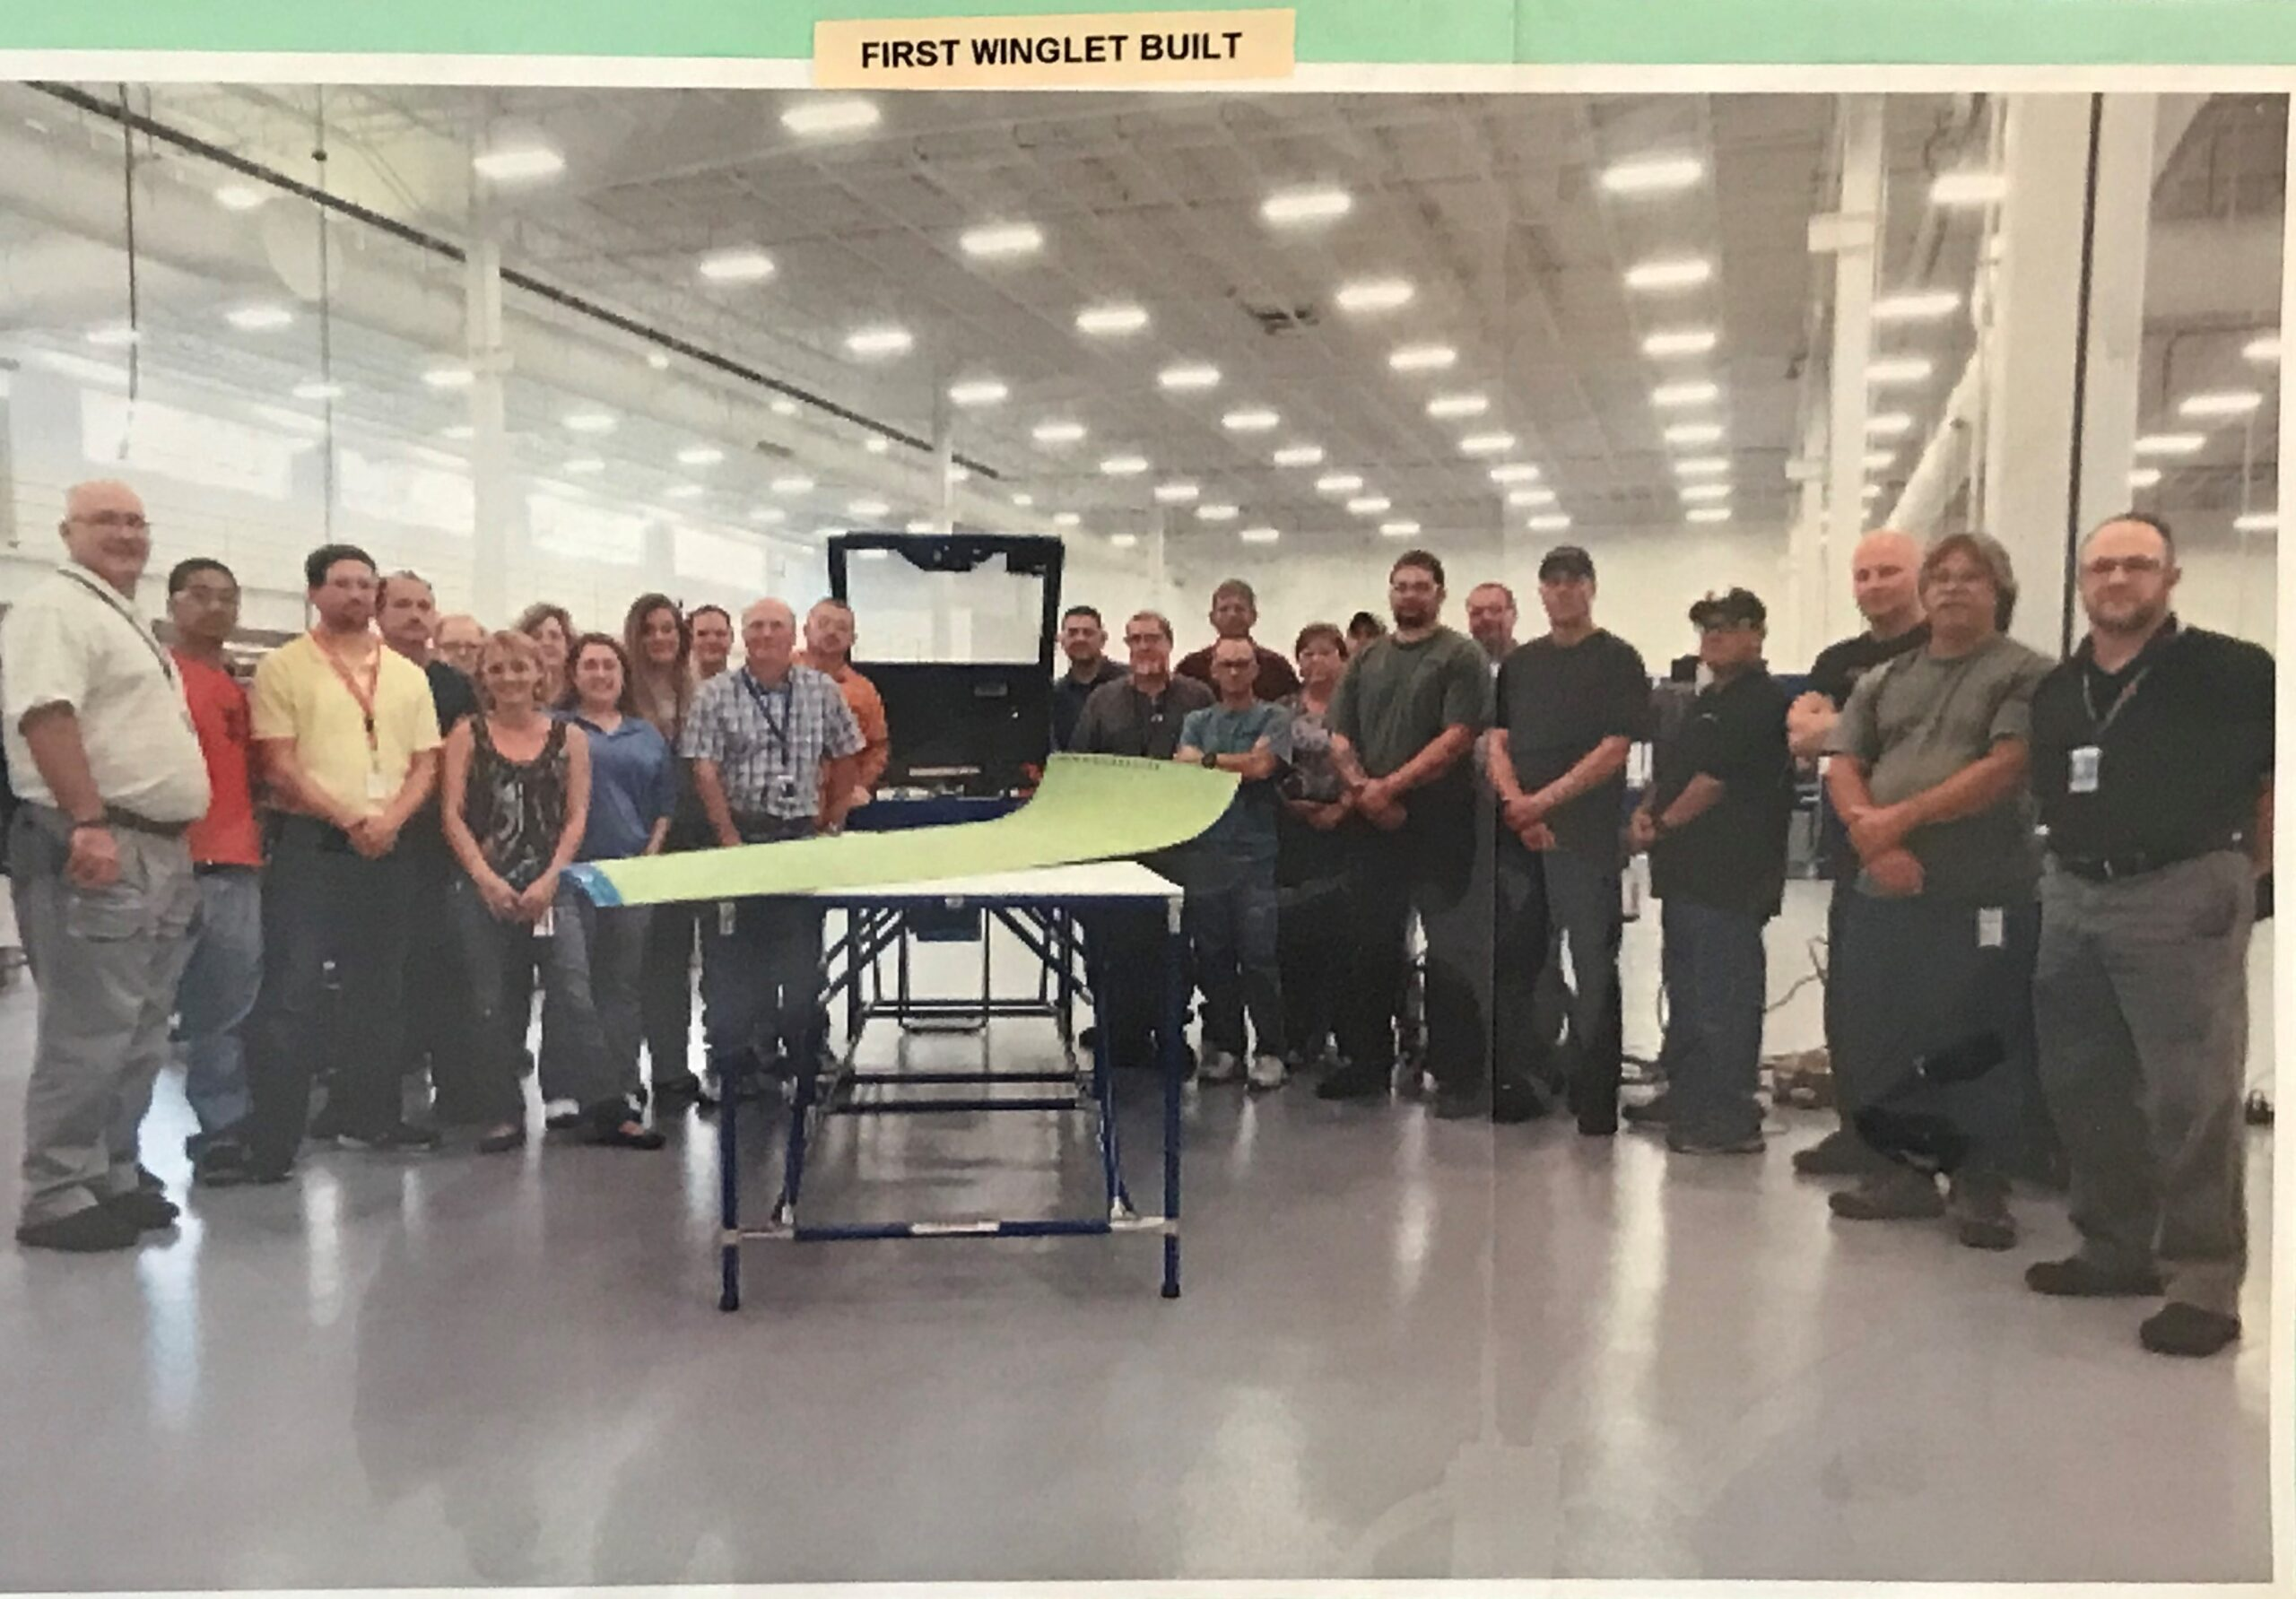 First Winglet Built in Charleston Aerostructures facility